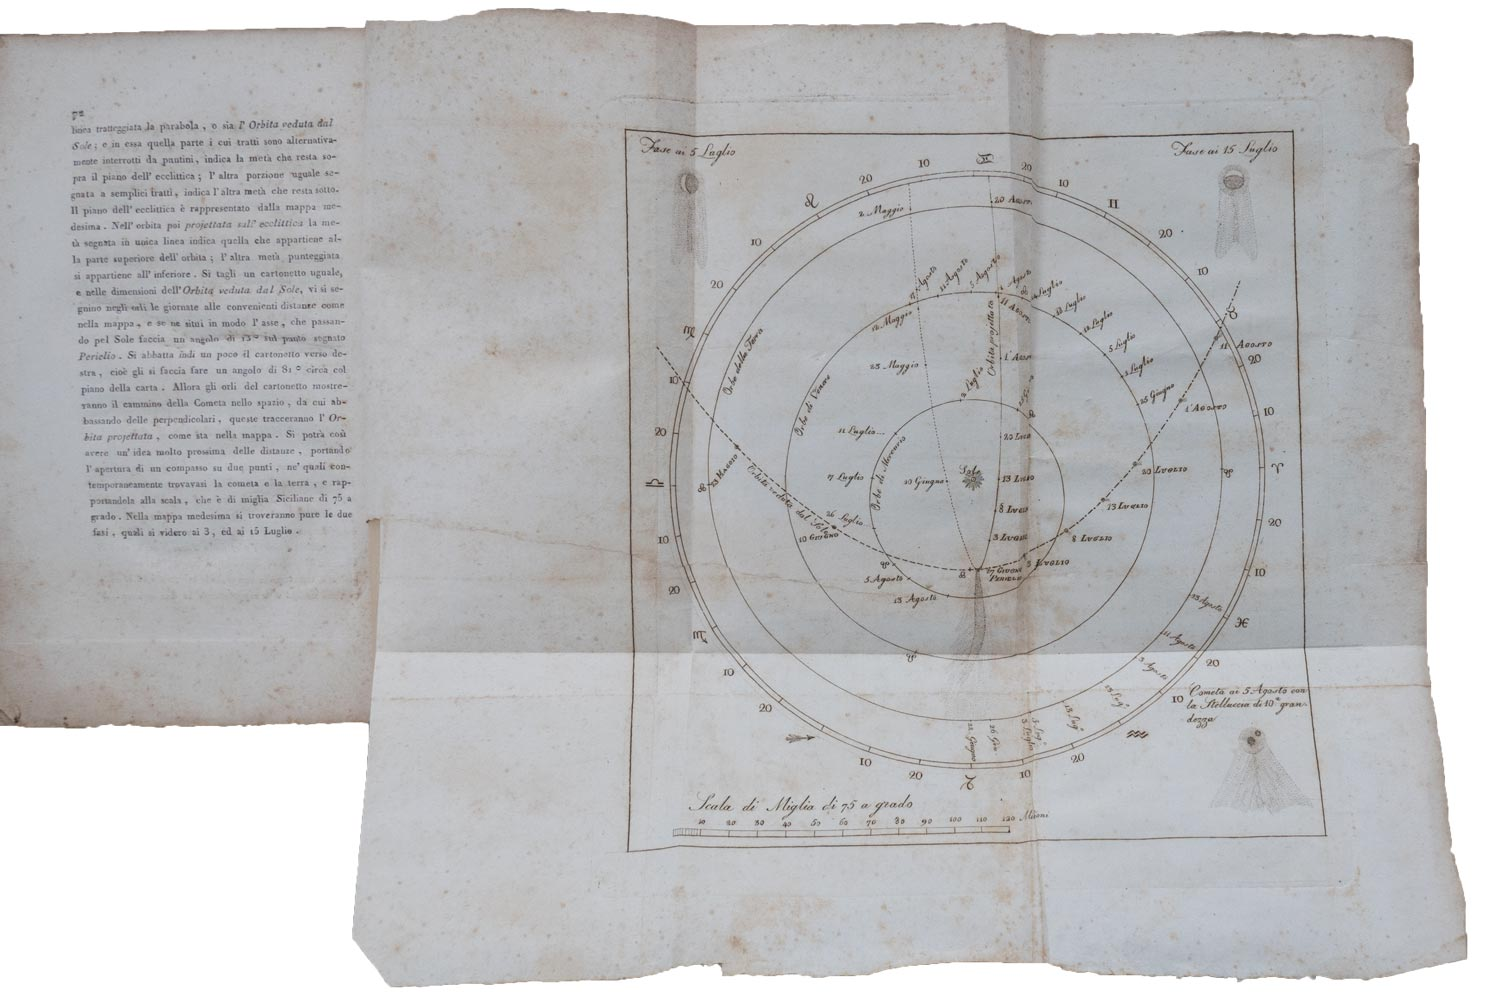 From a book in Sam Lemley's collection, this fold-out map records the path of the Great Comet of 1819.